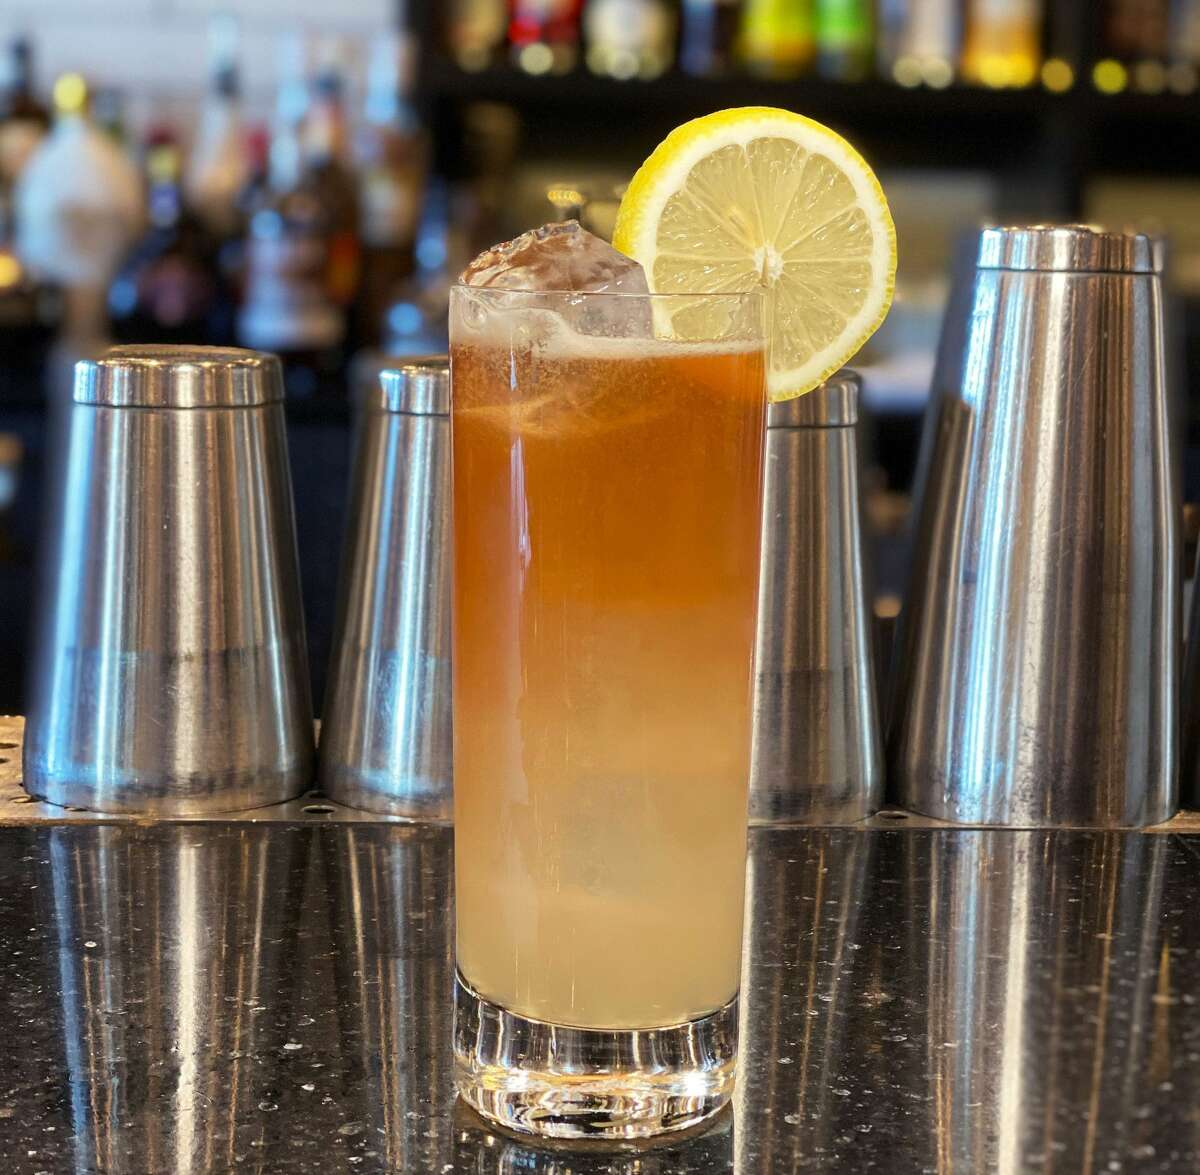 The Schenecta-Tea cocktail at The Shaker & Vine in Schenectady. (Provided photo.)